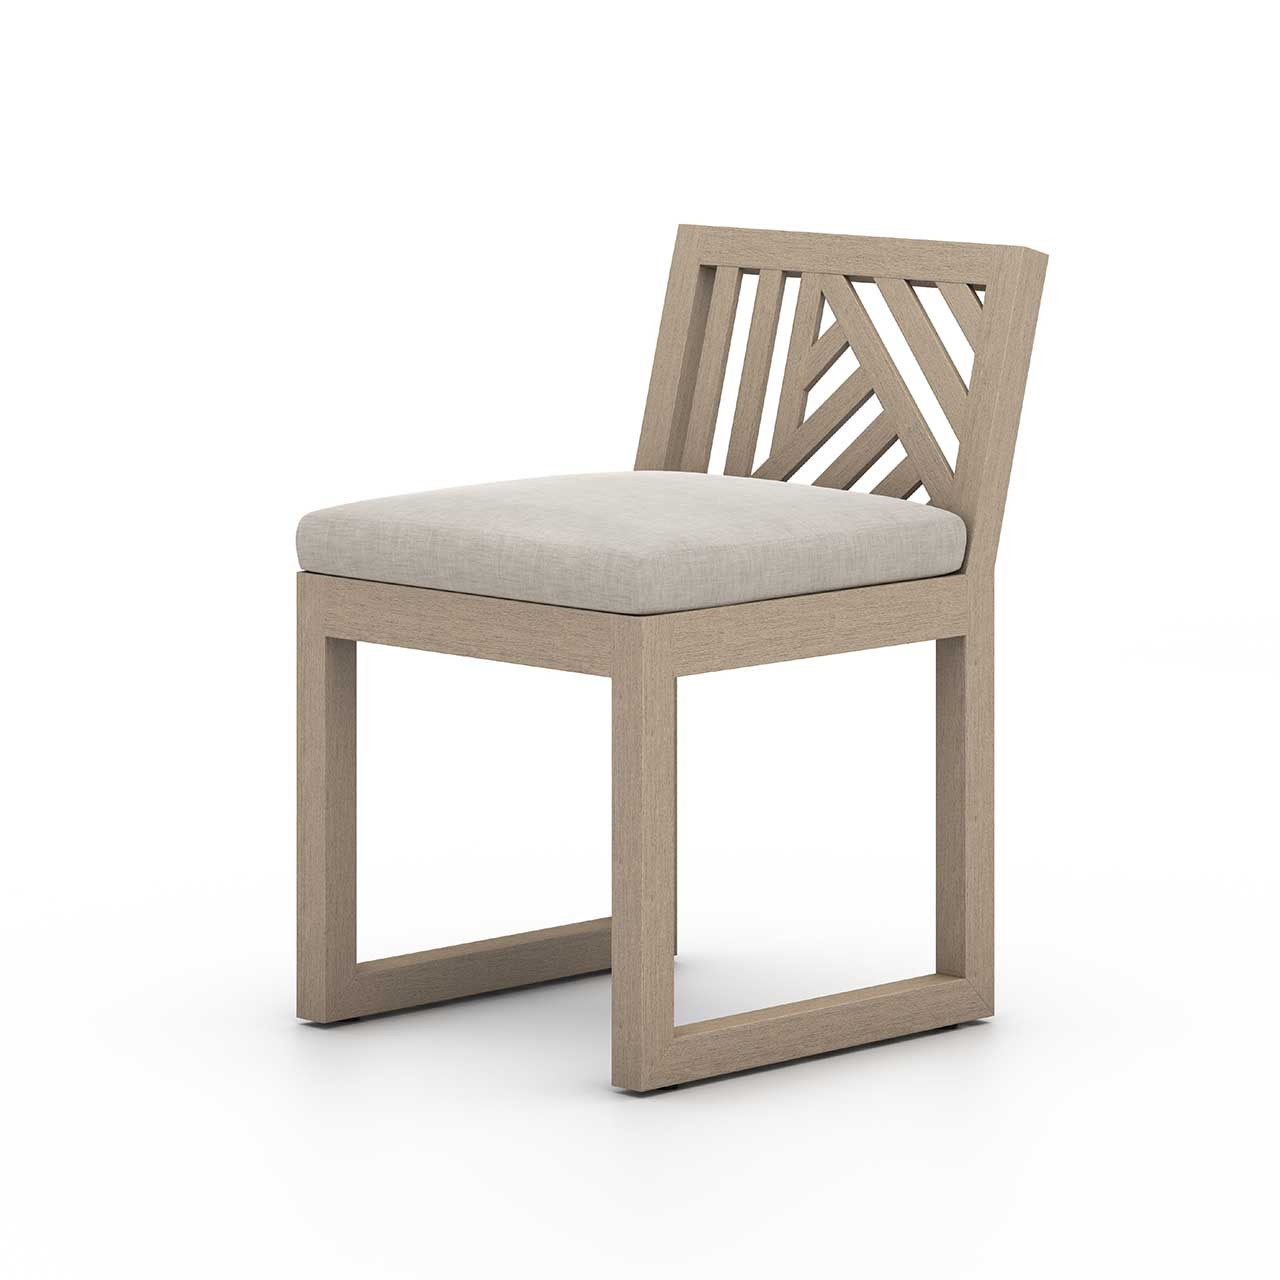 Alvey Outdoor Dining Chair   Washed Brown